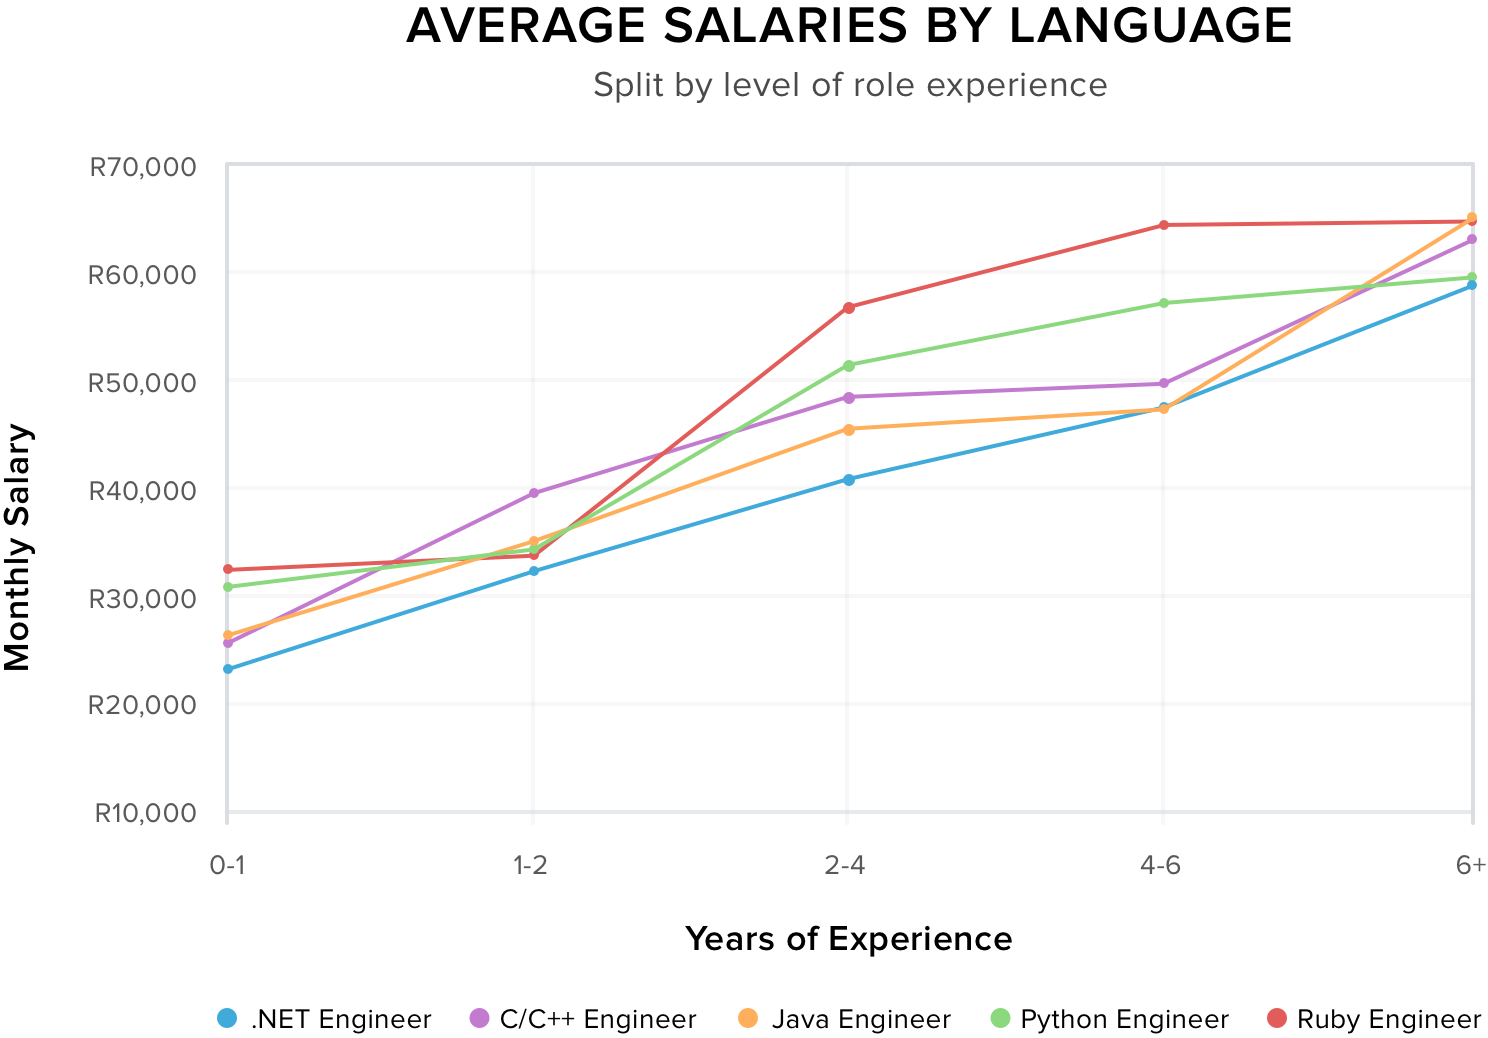 Average Salaries by Language